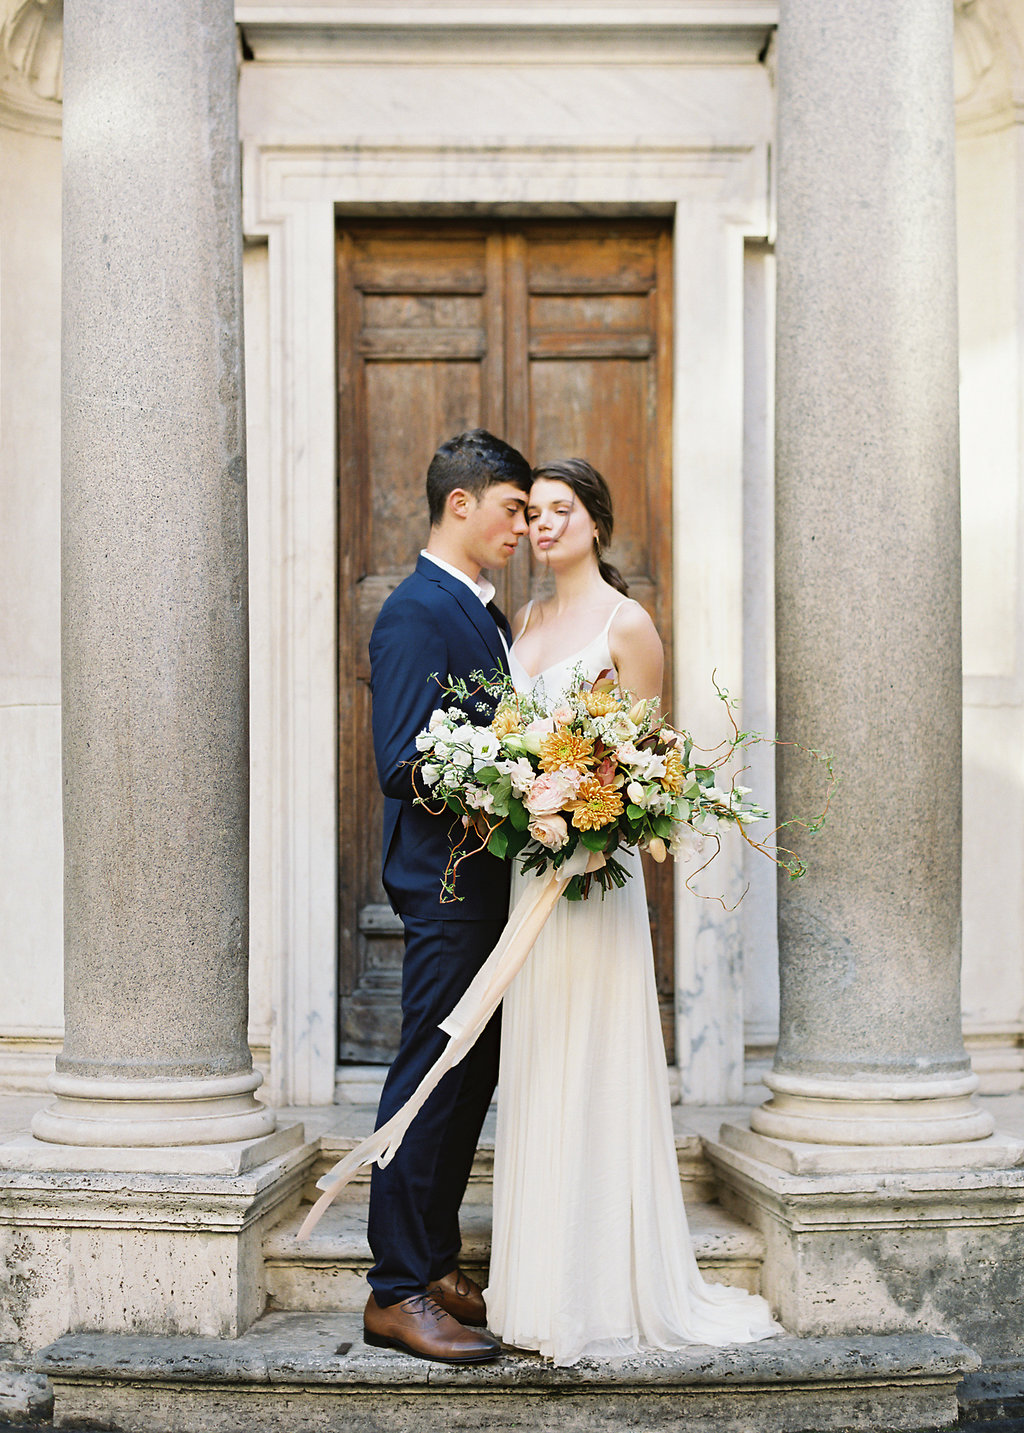 Vicki_Grafton_Photography_Rome_Italy_Wedding_Photographer_2017-104.jpg